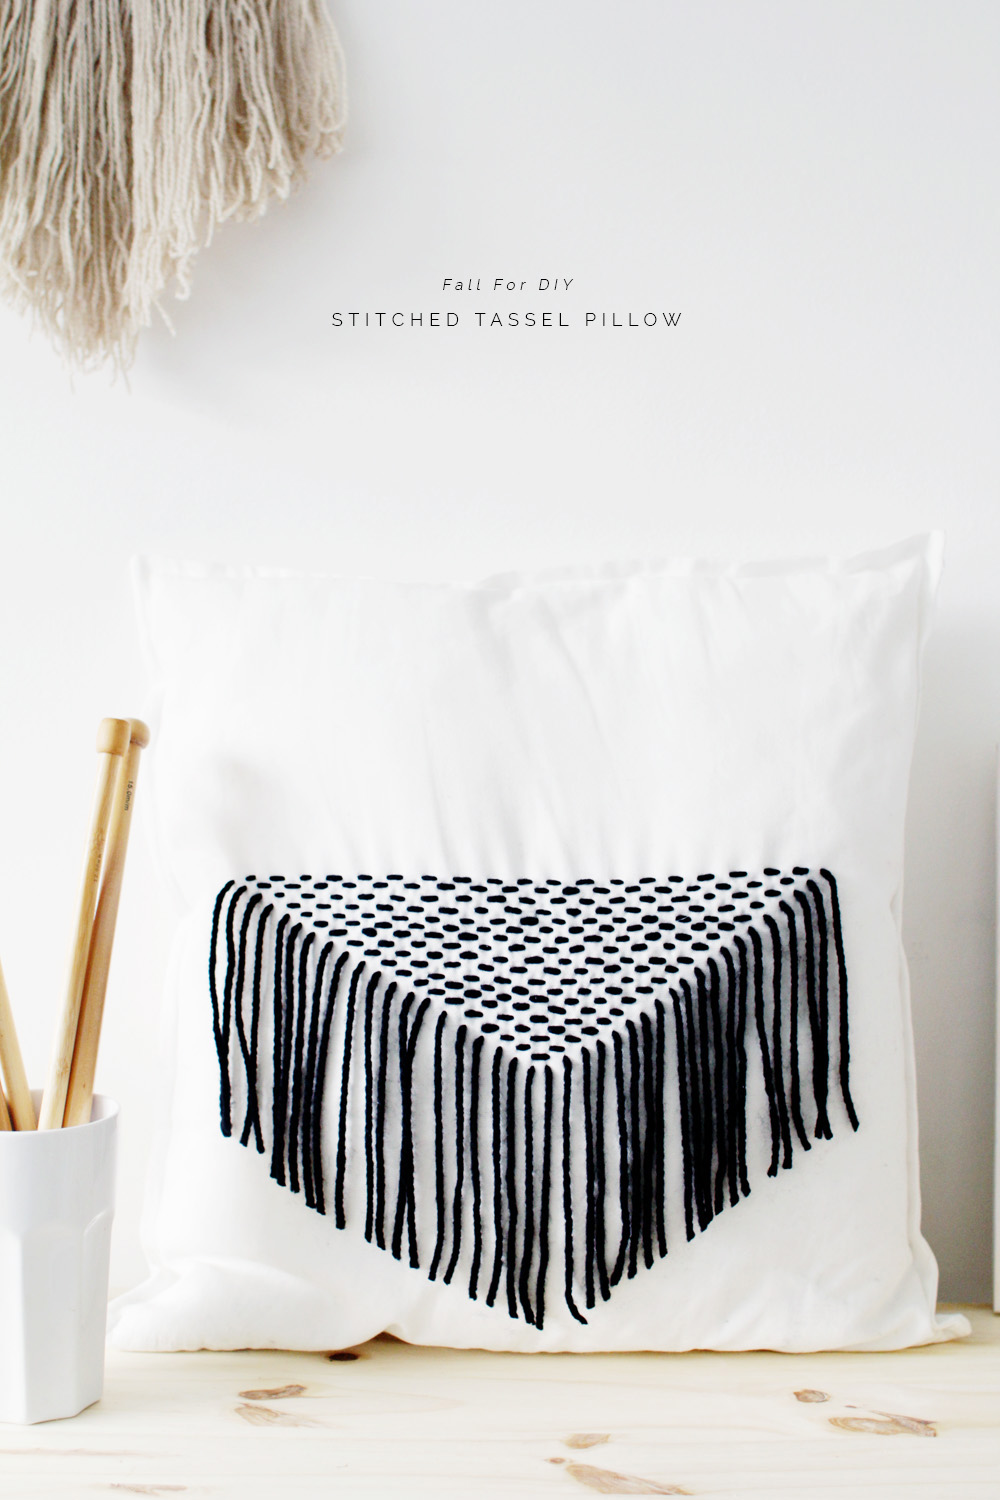 stitched tassel pillow diy